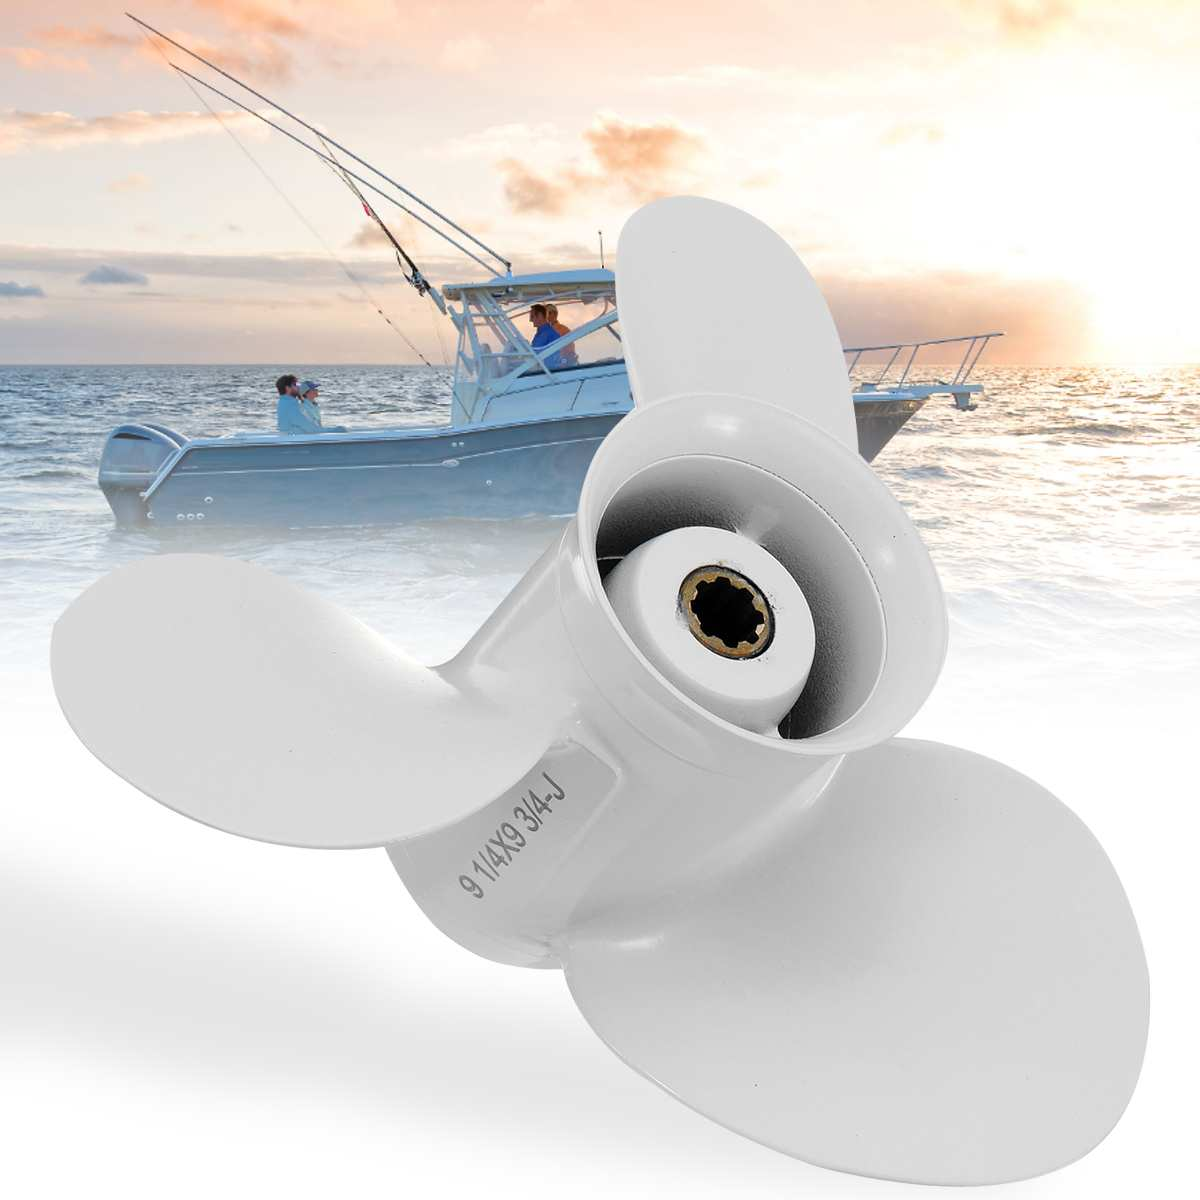 Boat Parts & Accessories 683-45952-00-el 9 1/4 X 9 3/4 Boat Outboard Propeller For Yamaha 9.9-15hp Aluminum Alloy 3 Blades 8 Spline Tooths White To Adopt Advanced Technology